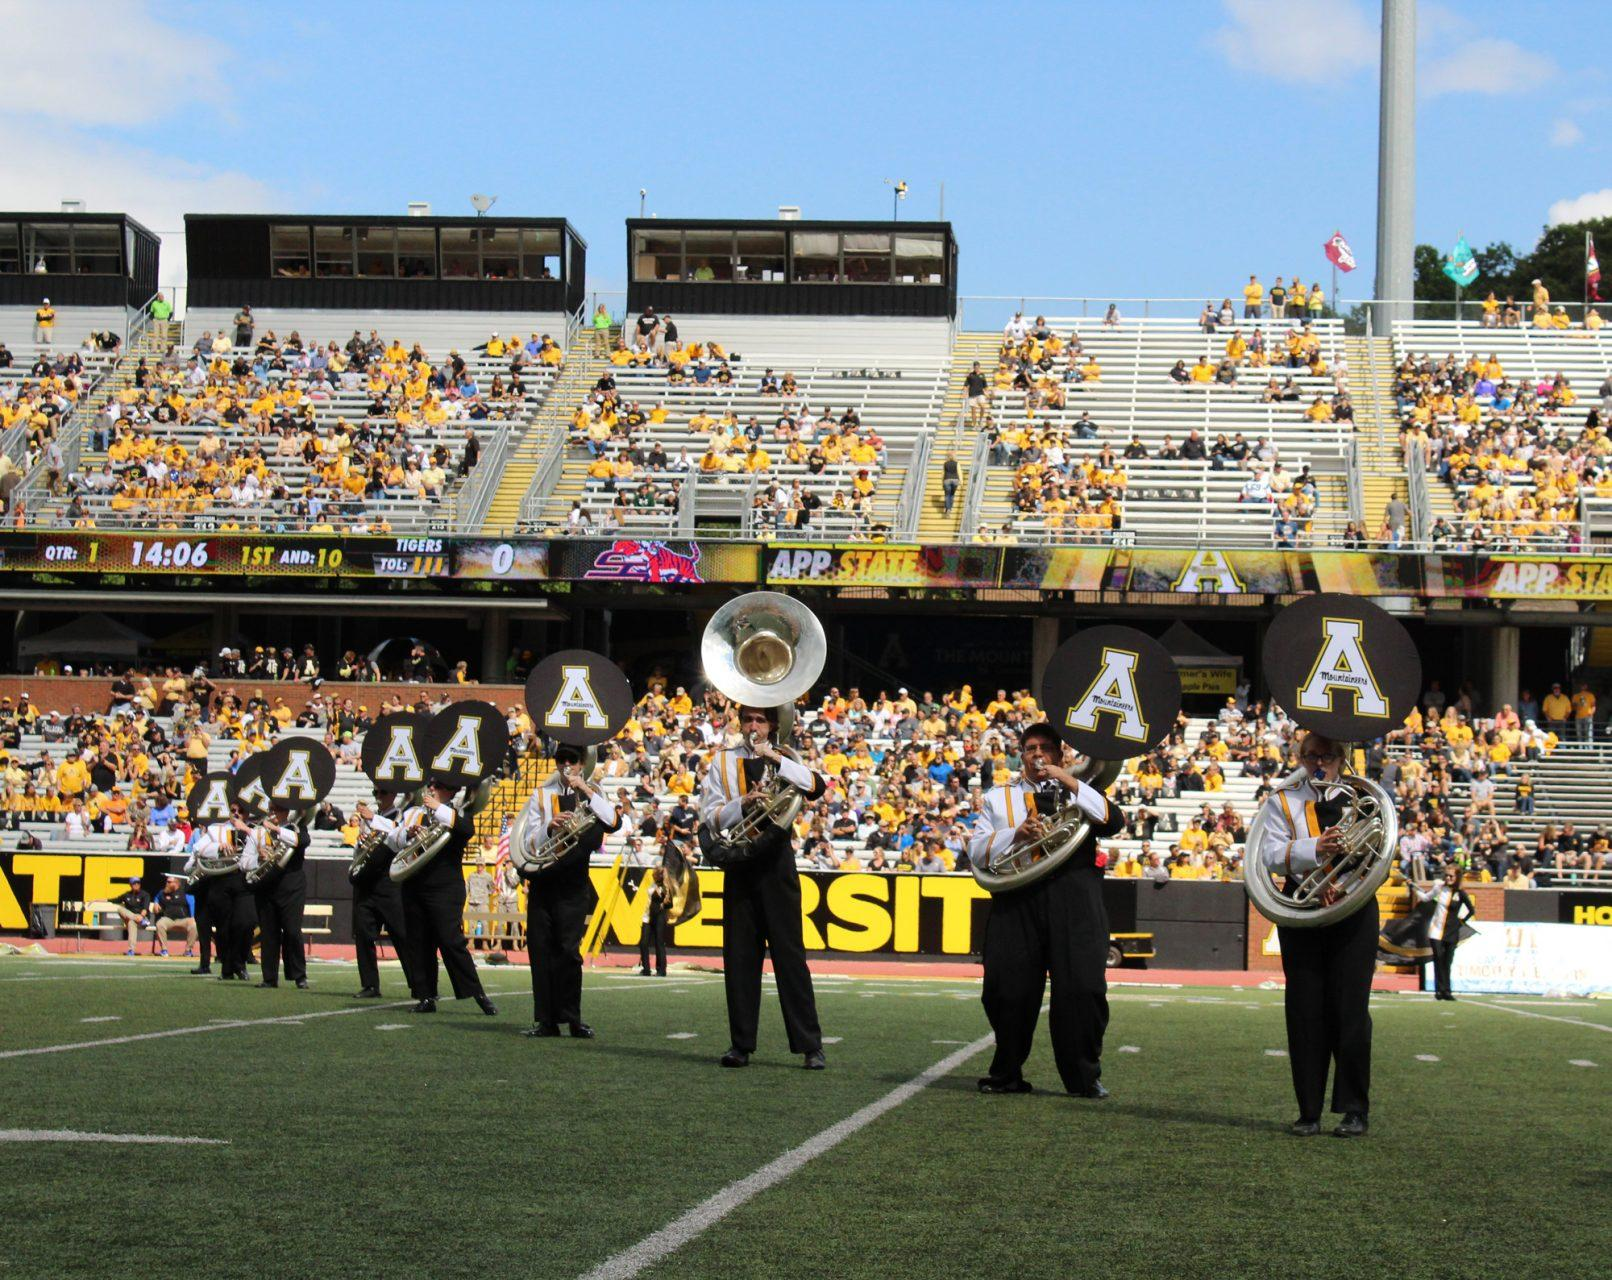 The Marching Mountaineers perform the National Anthem at the first home football game of the 2017 season.